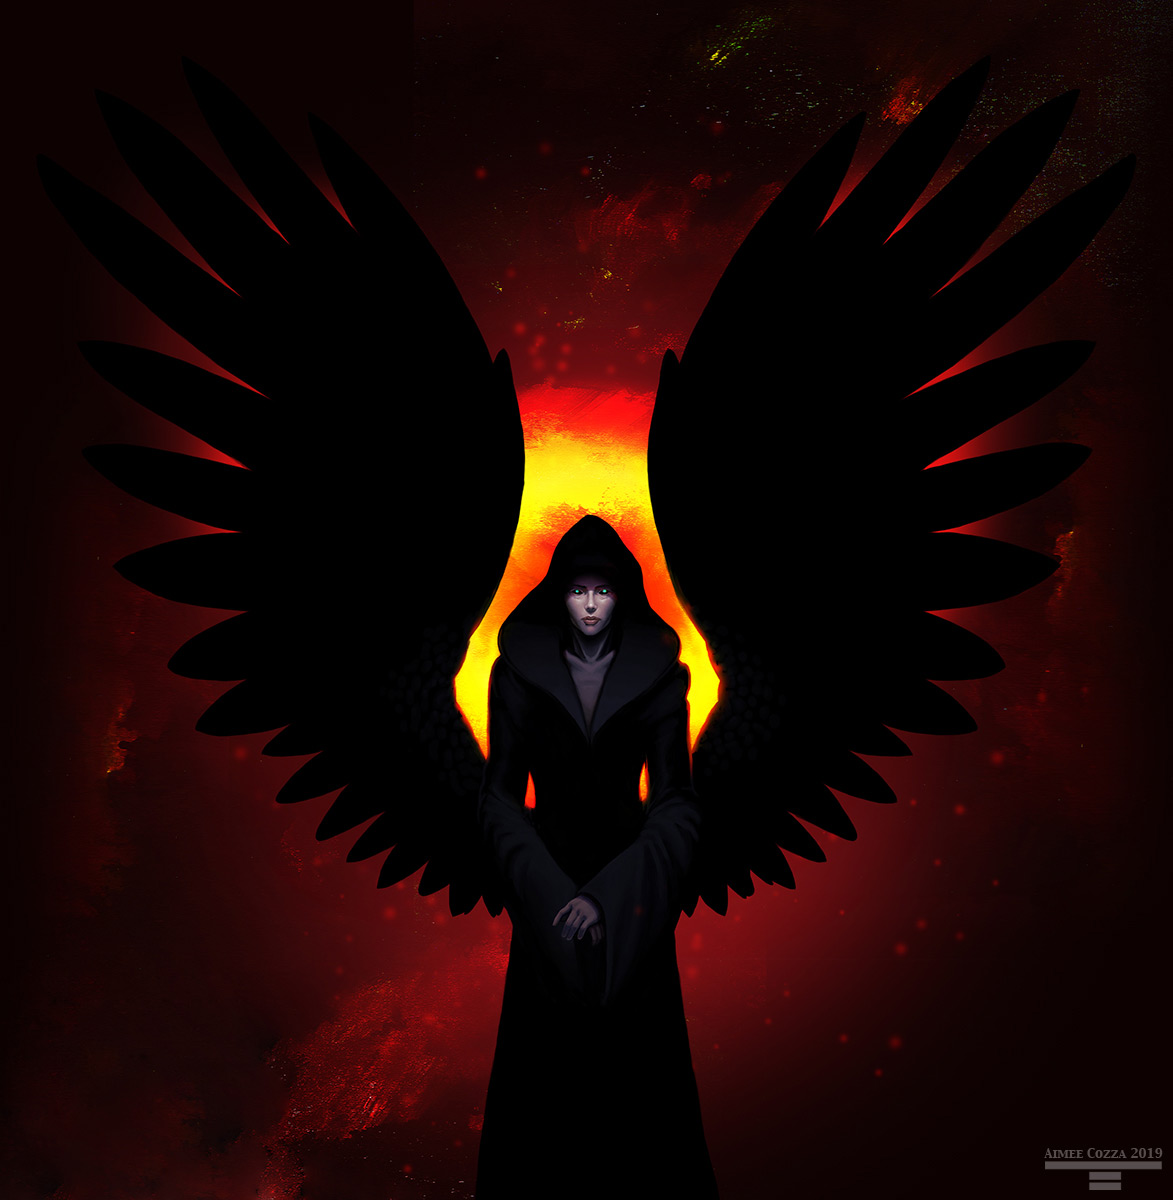 An image of a woman in a black hooded cloak. She has large outstretched black wings, and what little of her face we can see is pale. Her eyes are glowing and she is backlit in fiery colors